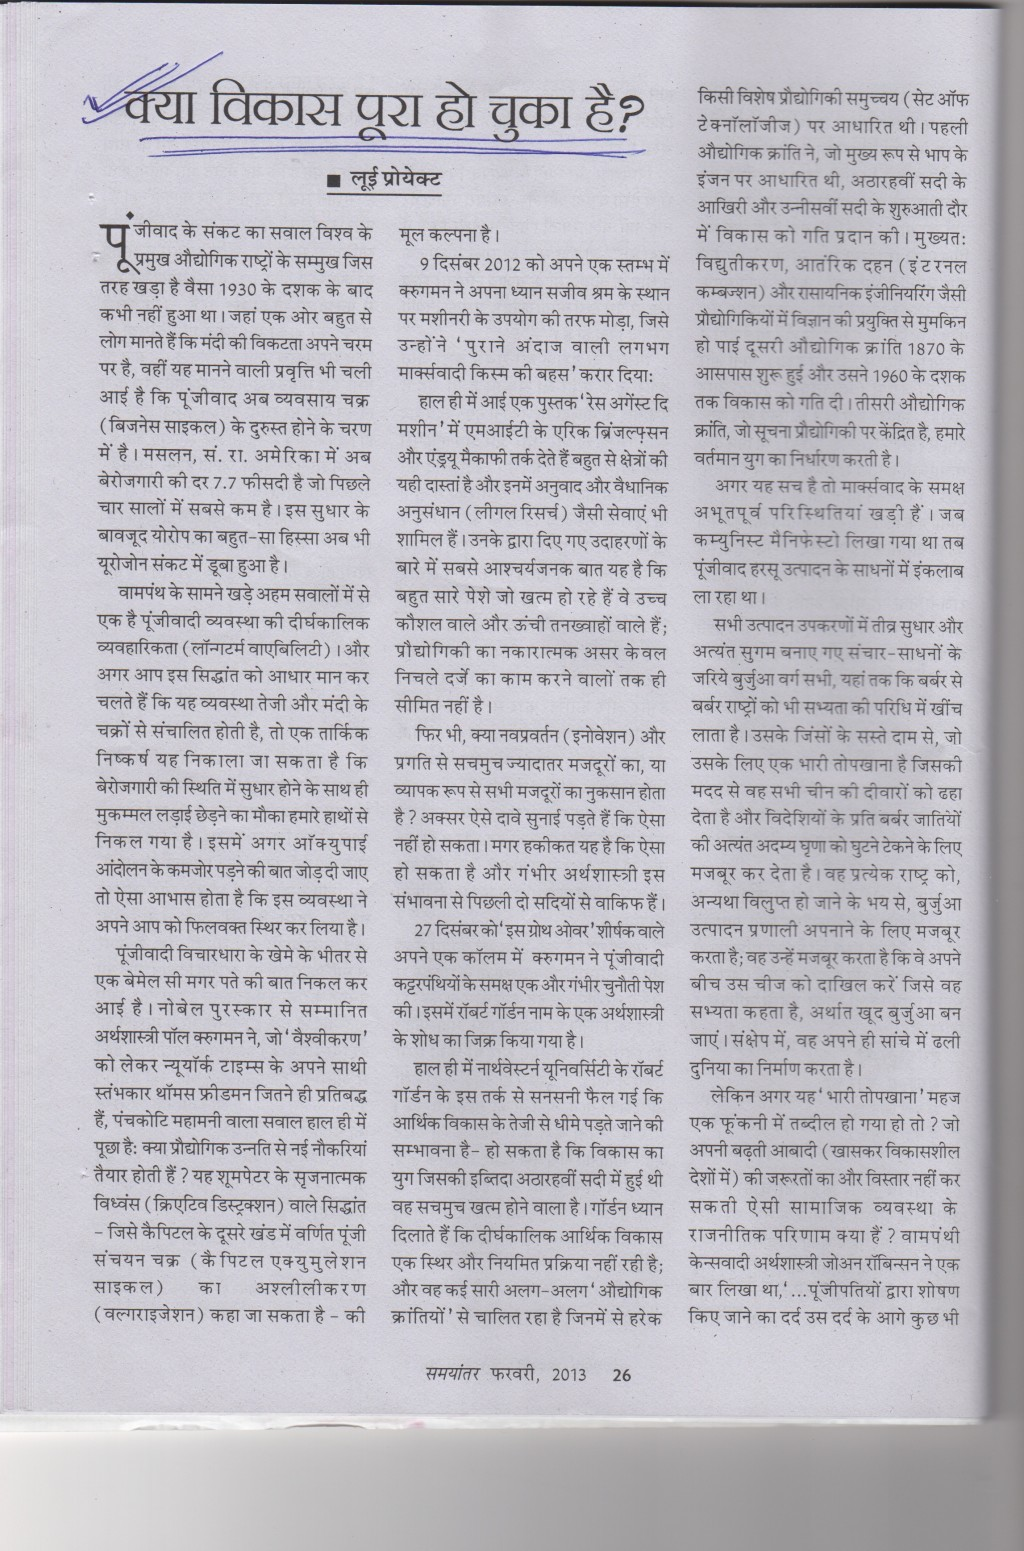 013 Why Is It Important To Vote Essay Contest Scan Top Large